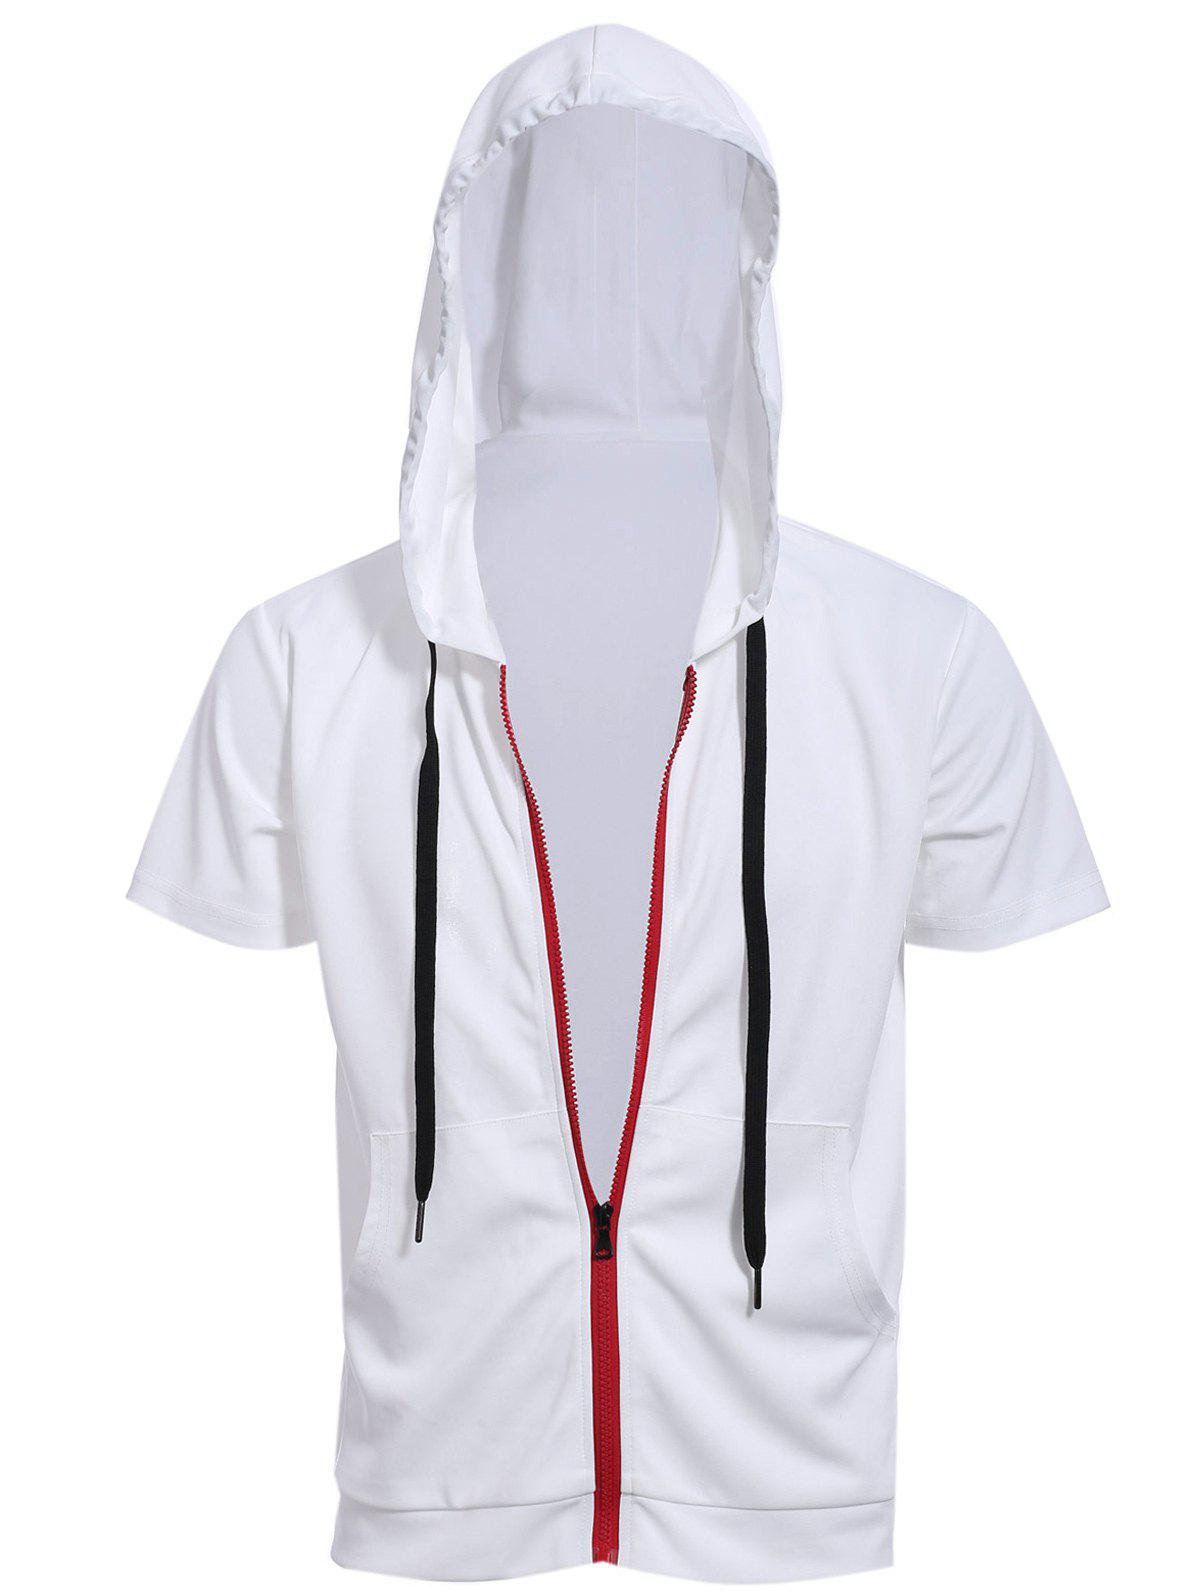 Red Zipper Fly Front Pocket Hooded Short Sleeves Men's White Hoodie - WHITE M